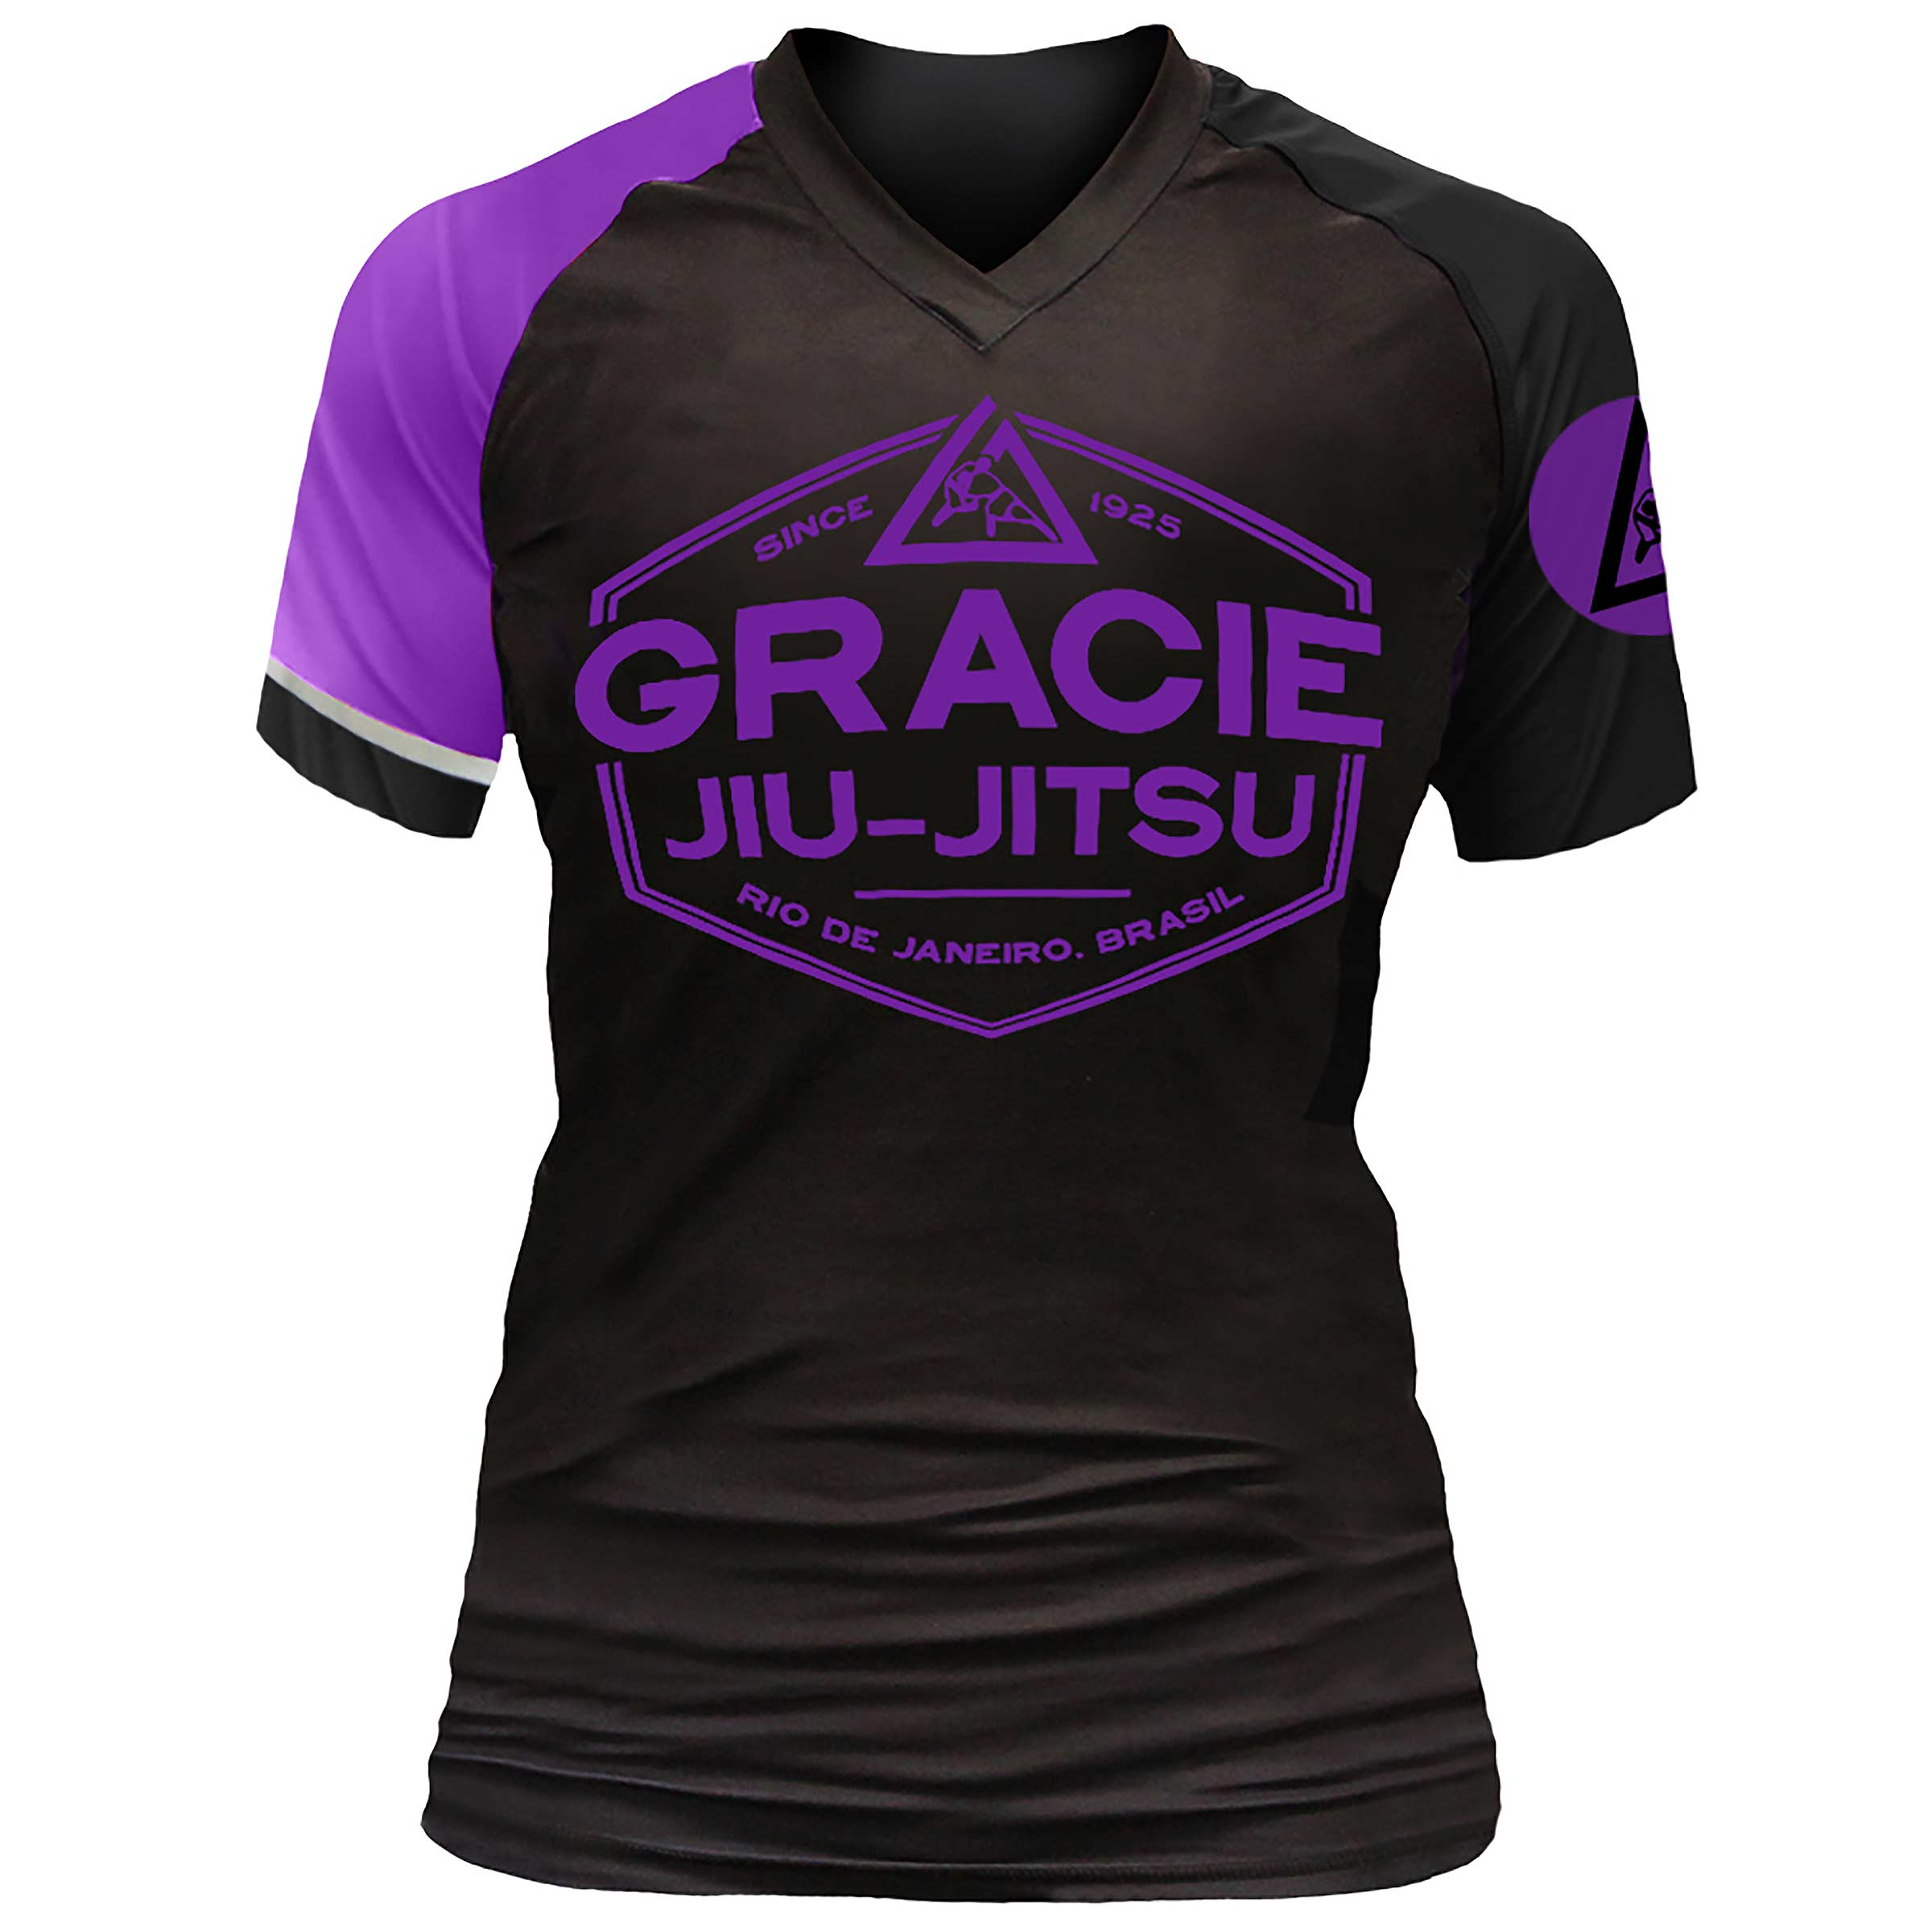 Gracie Jiu-Jitsu Womens Short Sleeve Rashguard